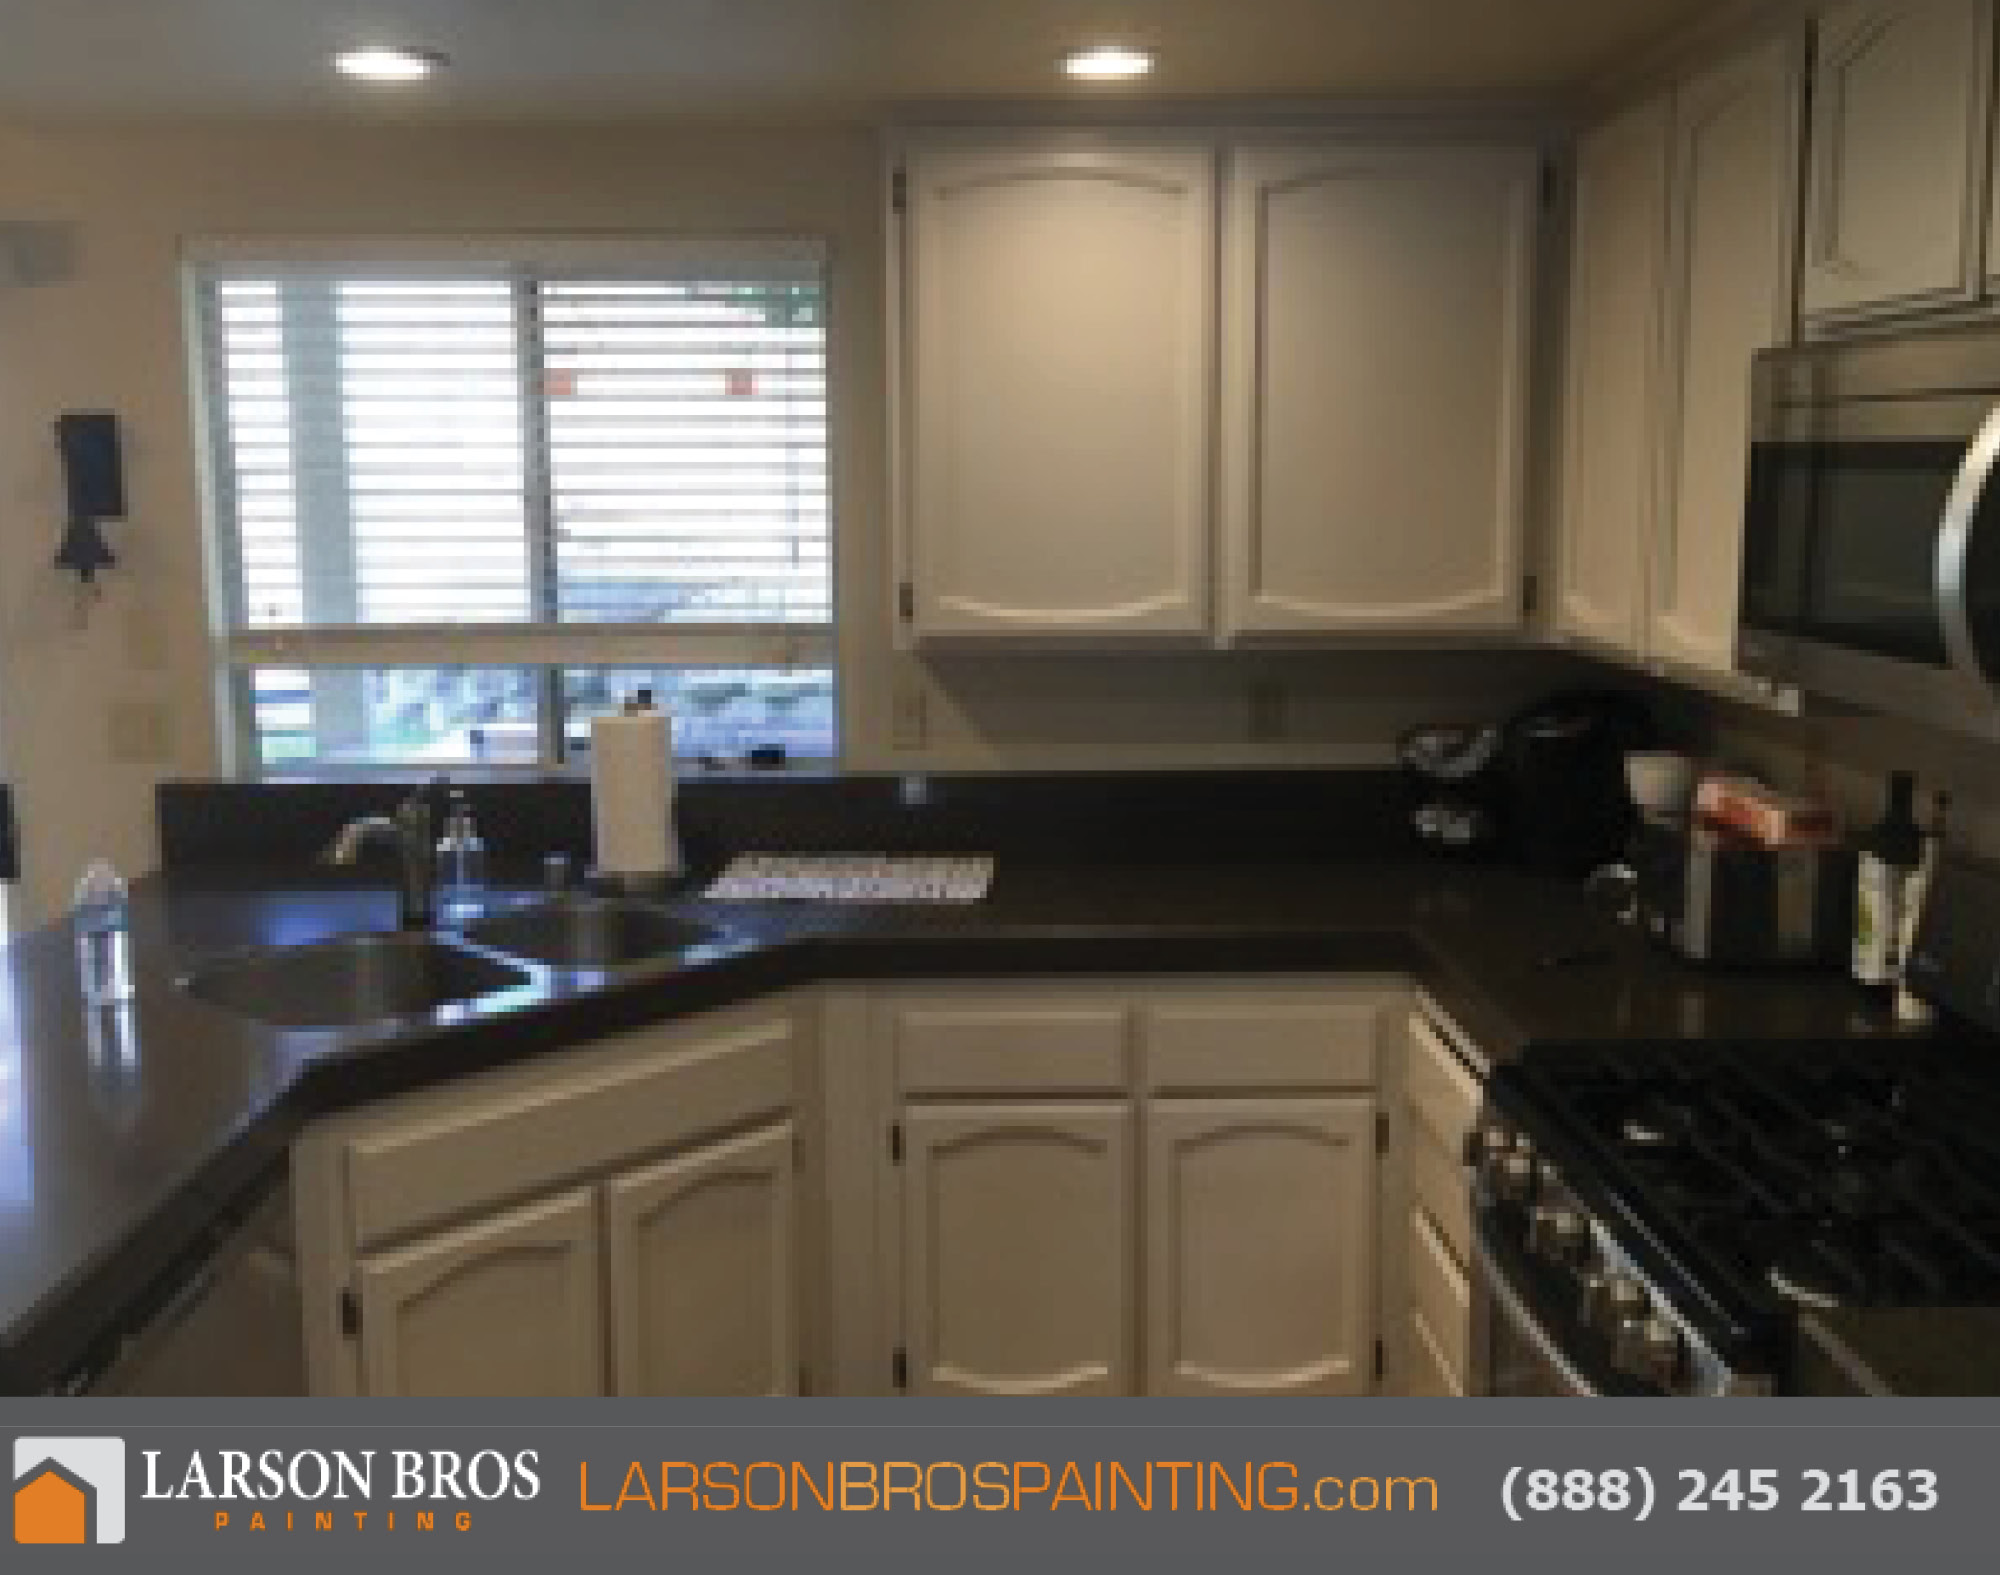 Professional Cabinet Painting - Larson Bros Painting